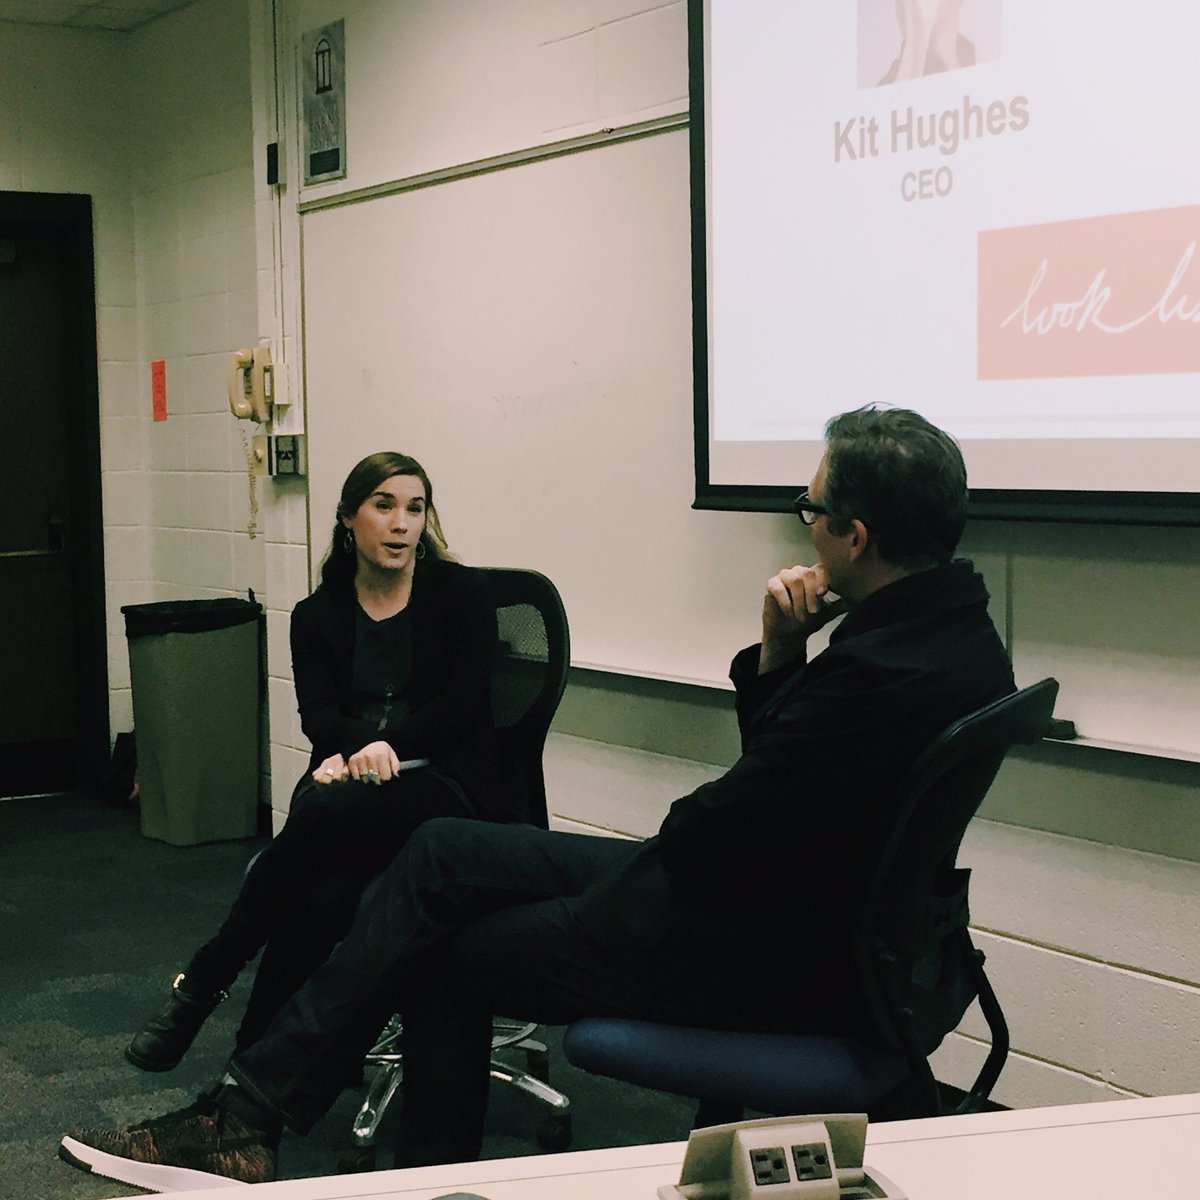 "AMA UGA on Twitter: ""Shoutout to CEO, Kit Hughes, and Senior Media Manager,  Laura Beaupre, from @looklisten. Thanks for dropping by � #AMAatUGA #AMA  ..."